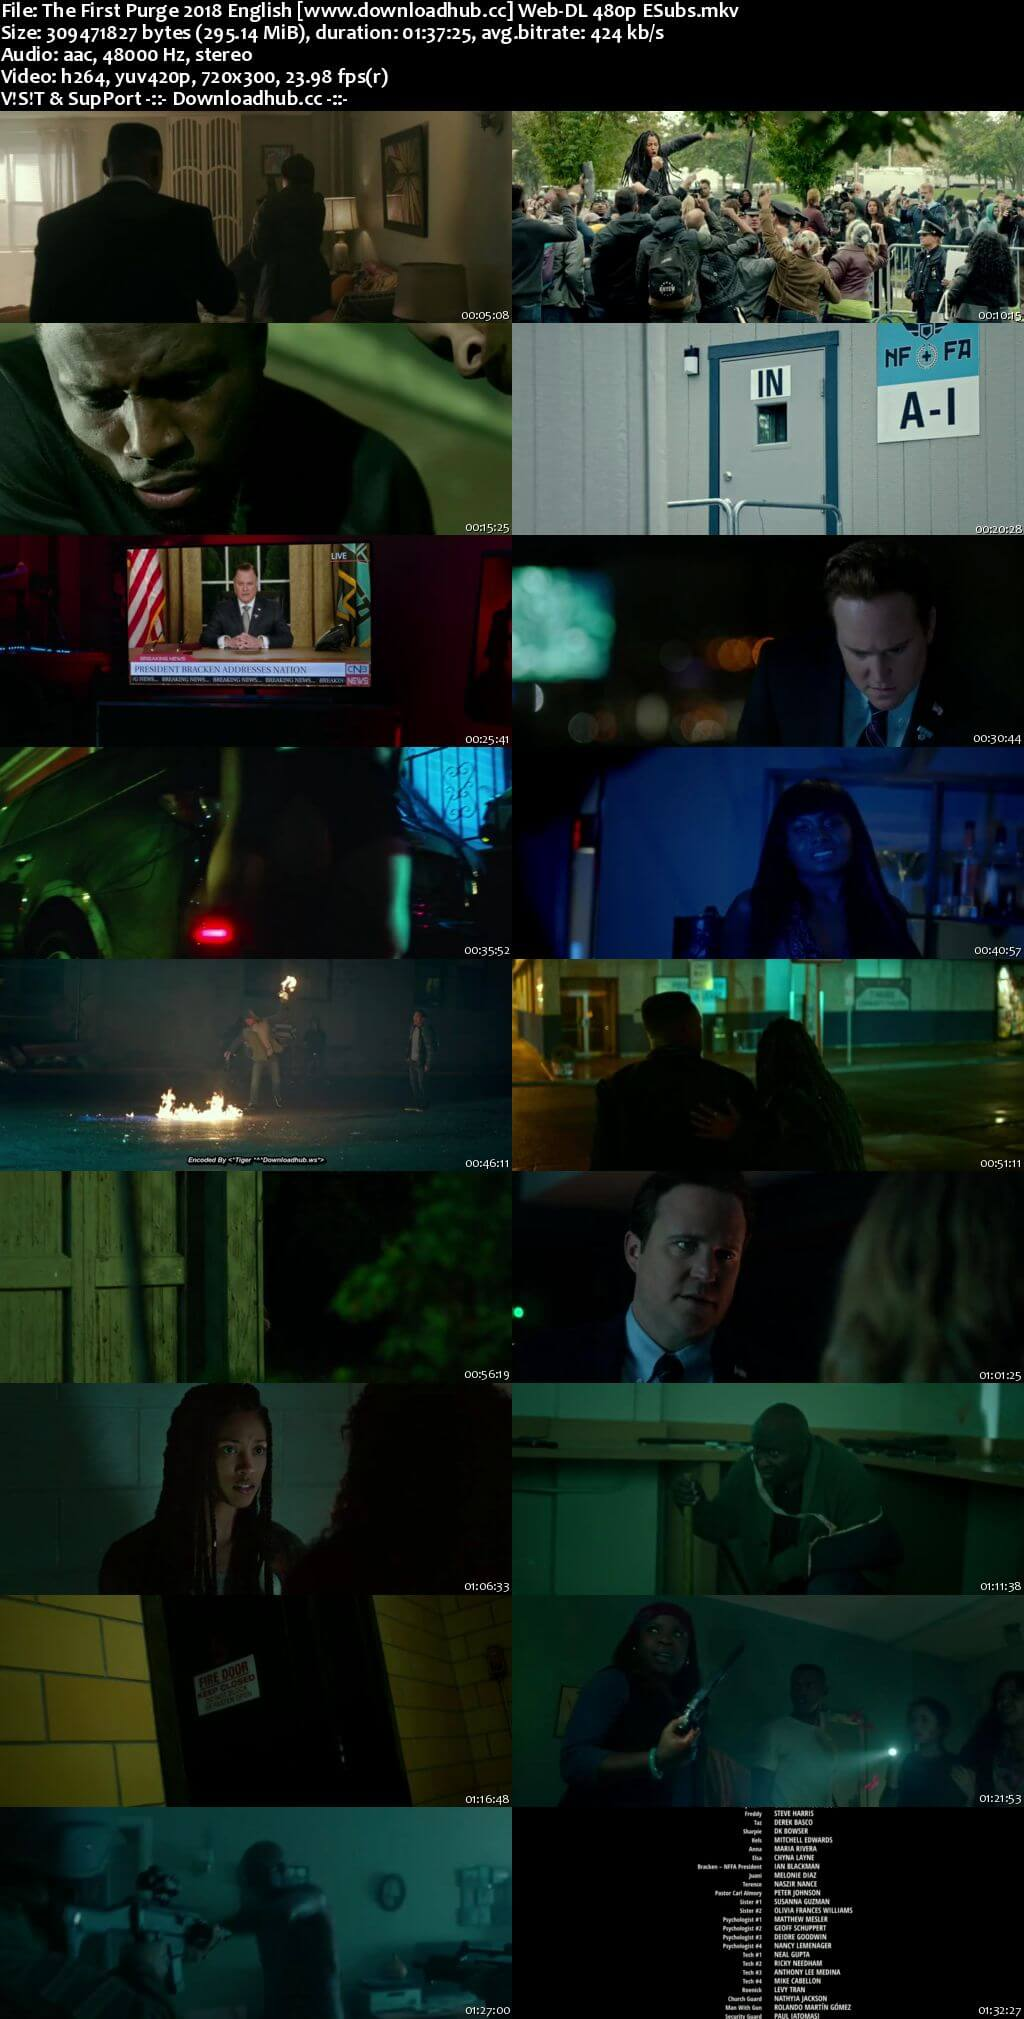 The First Purge 2018 English 300MB Web-DL 480p ESubs